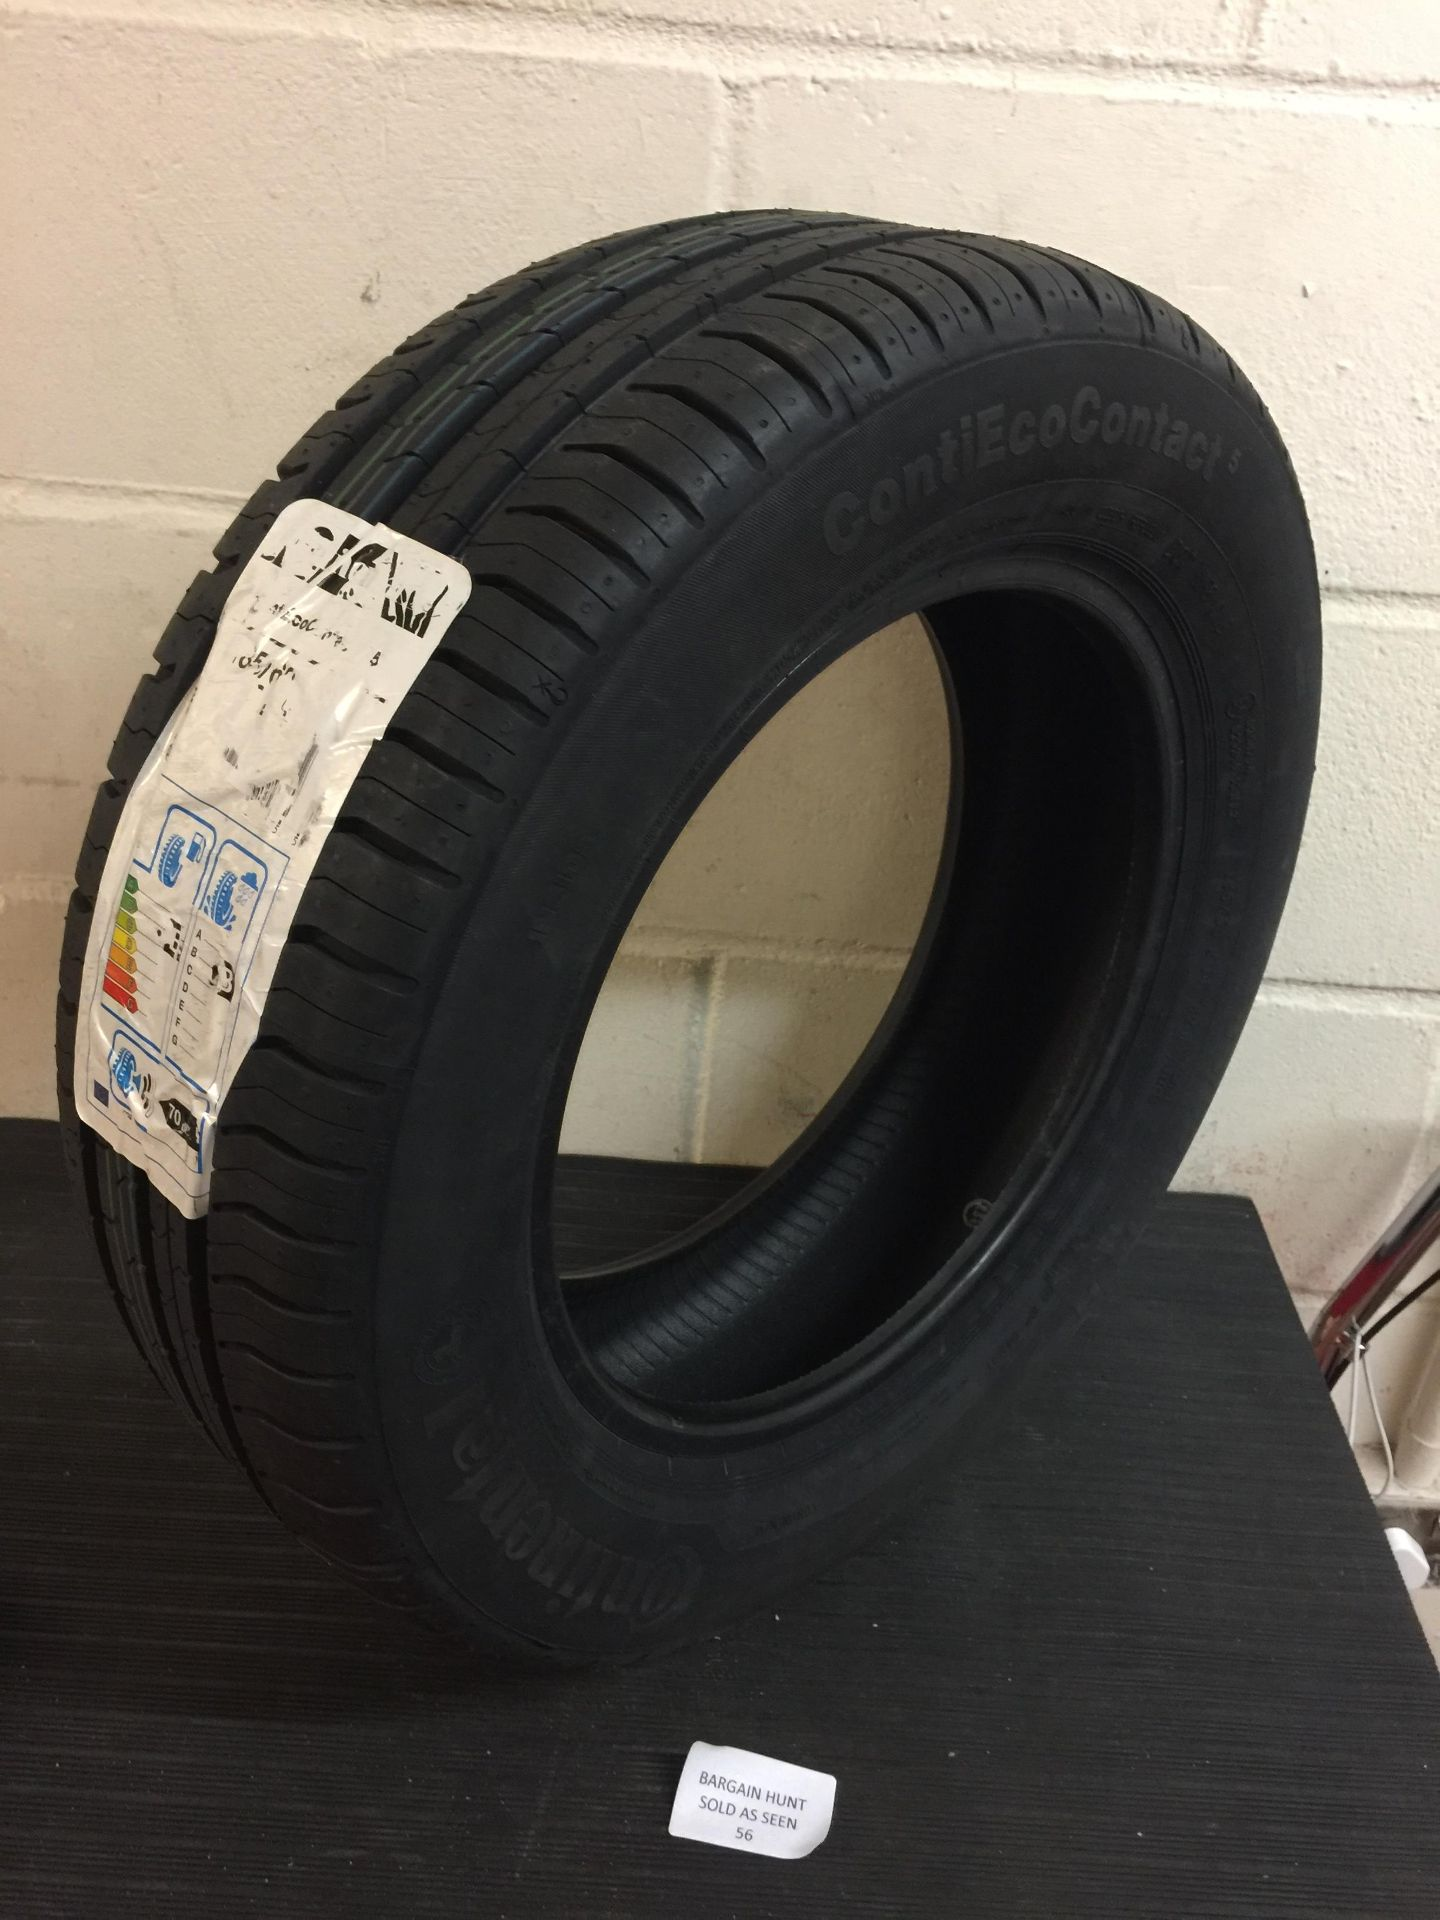 Lot 56 - Continental Tyre 185/60 R14